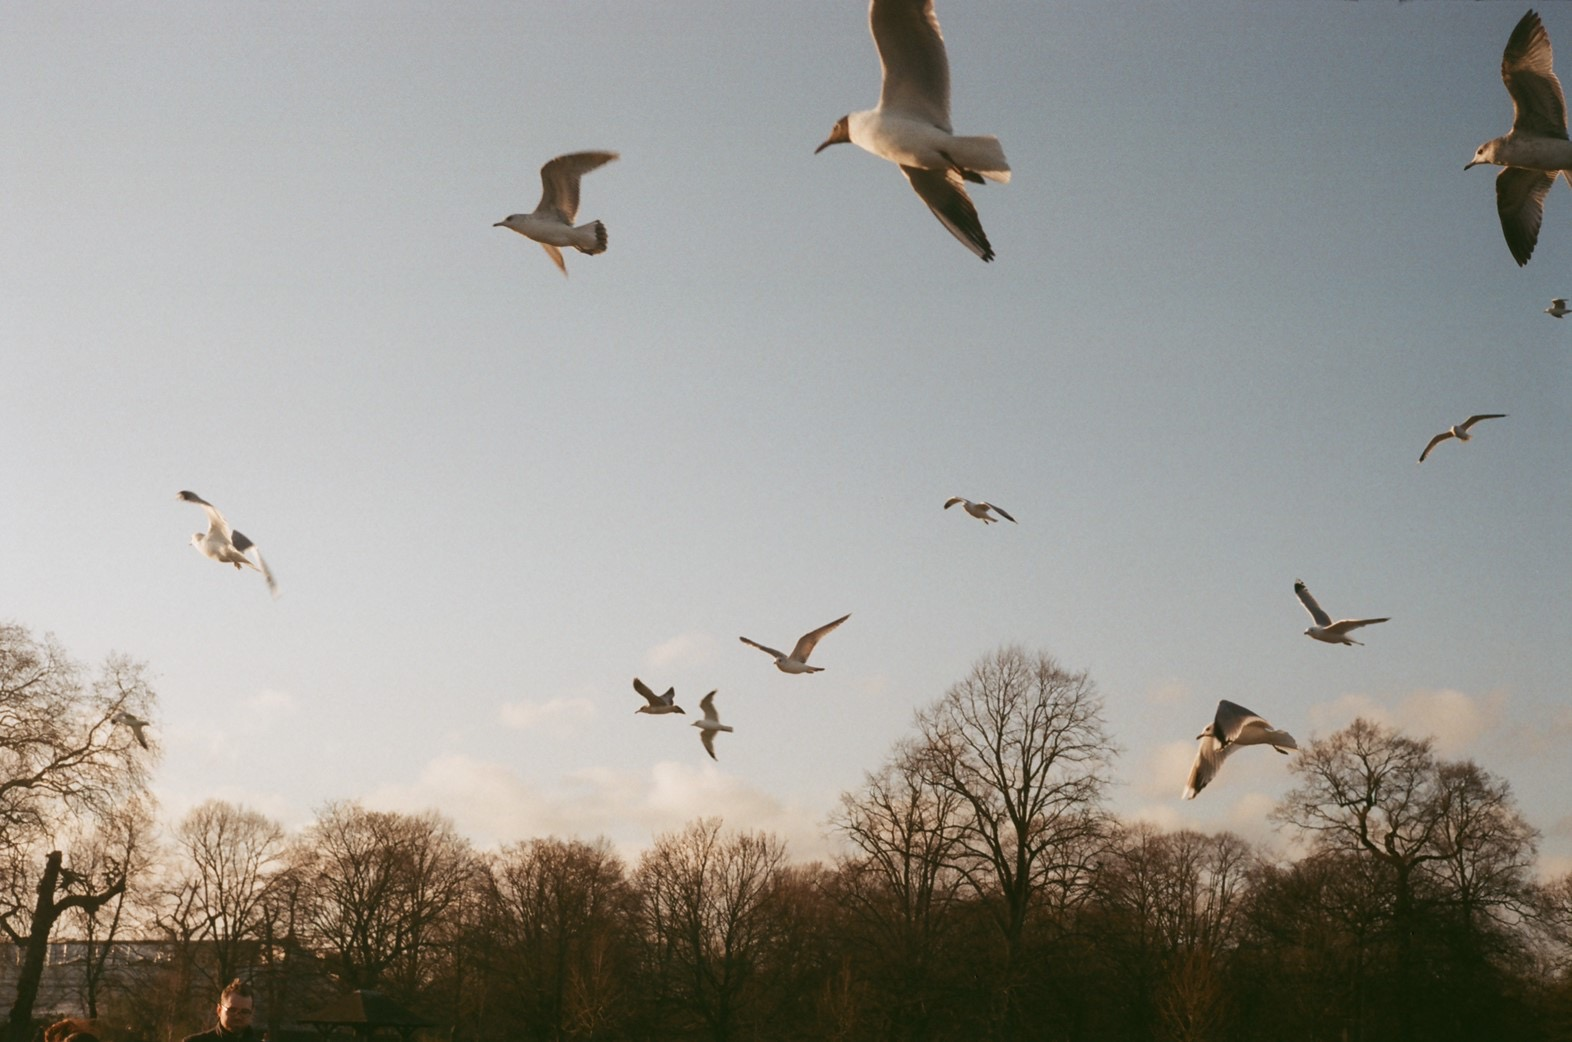 Group of birds flying in Hyde park